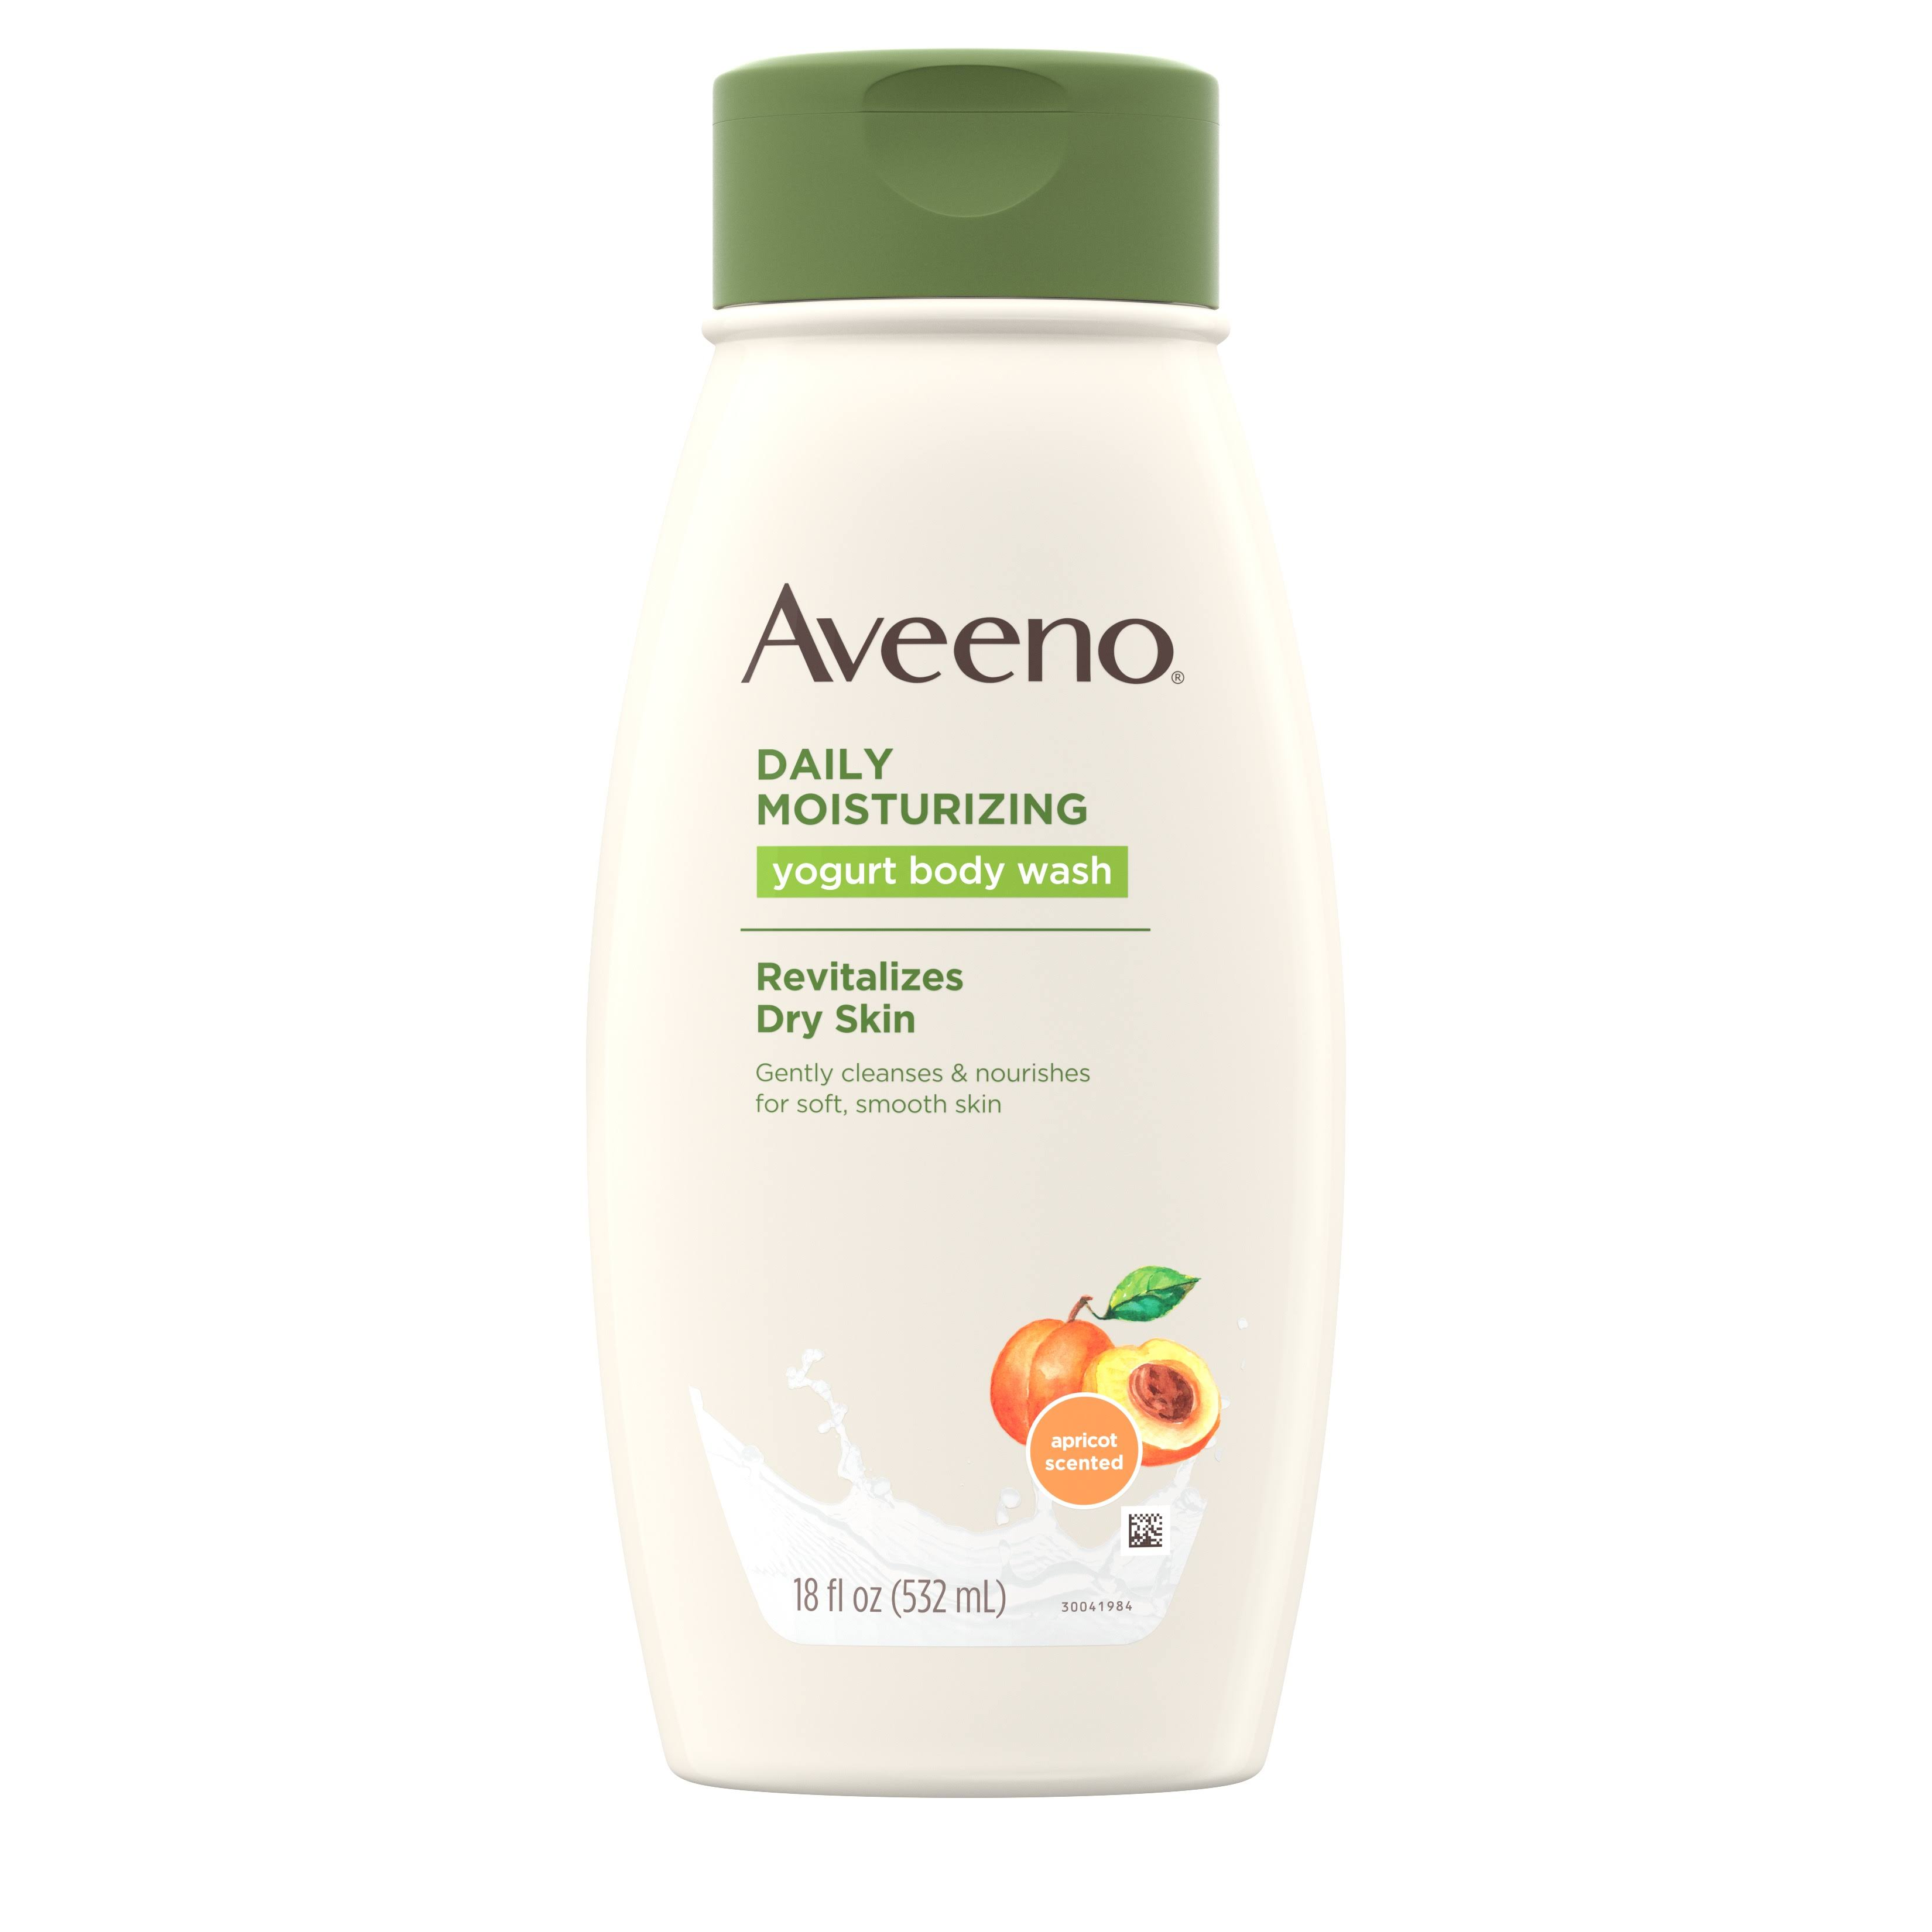 Aveeno Active Naturals Daily Moisturizing Yogurt Body Wash - Apricot and Honey, 18oz